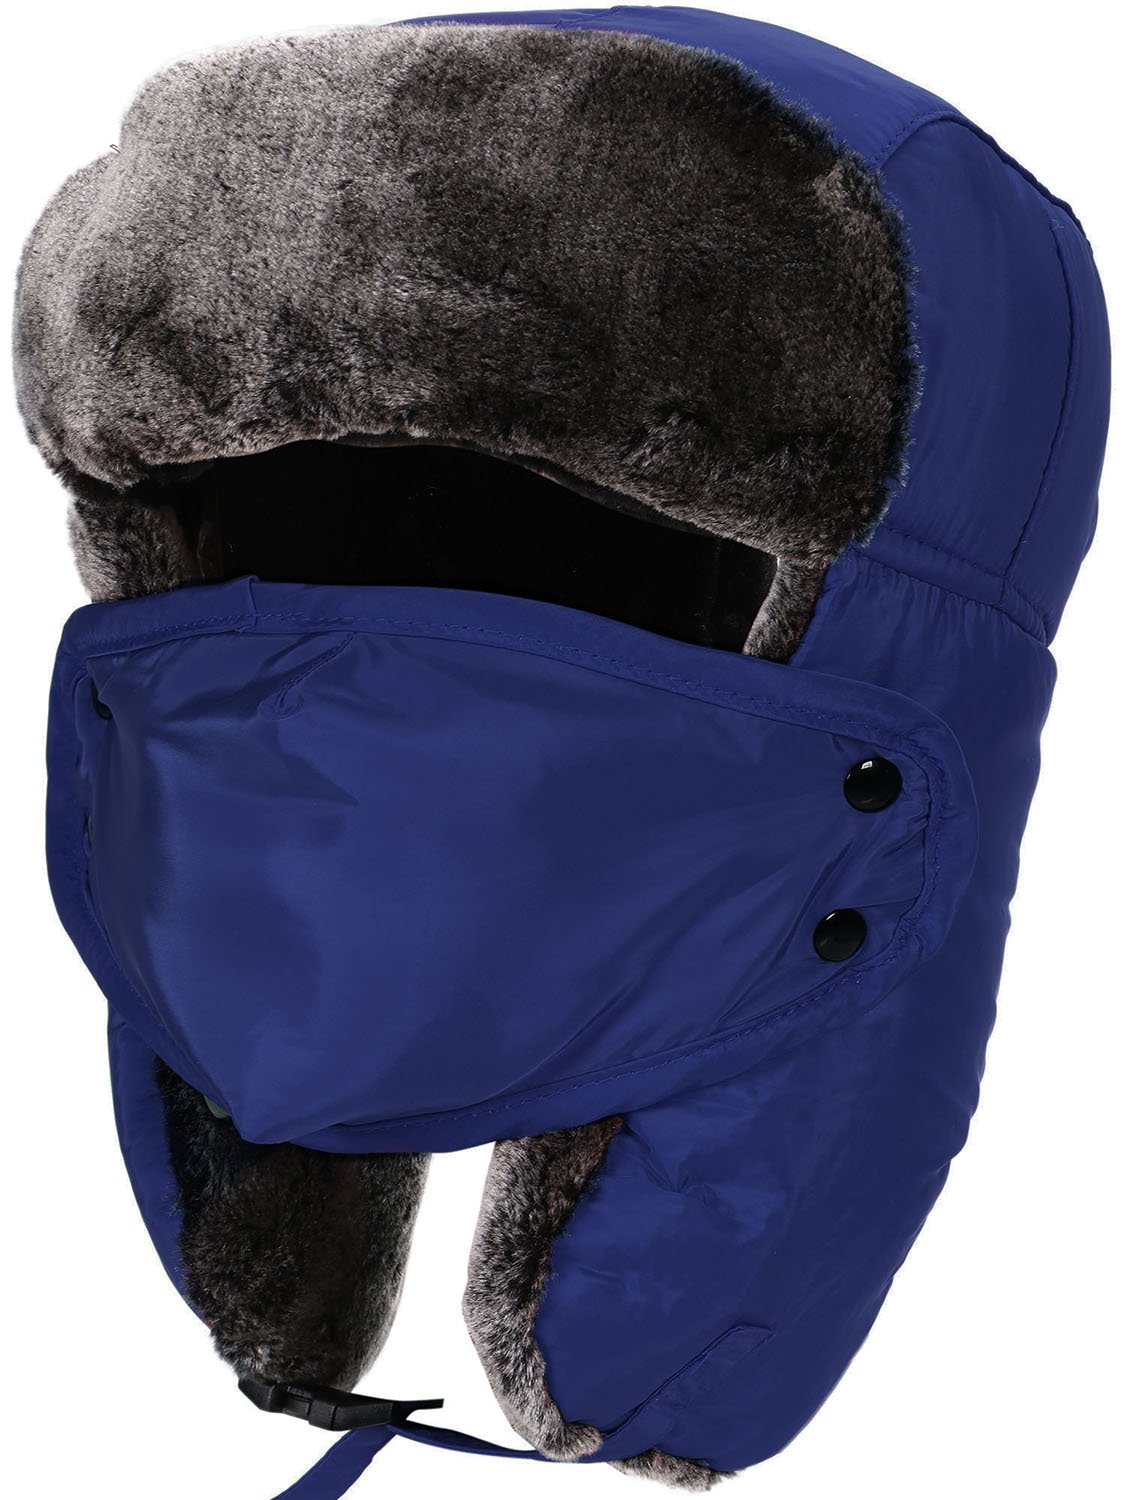 ee4a74c705d Verabella Winter Faux Fur Outdoor Trapper Cap Ushanka Russian Hats  Windproof Facemask product image